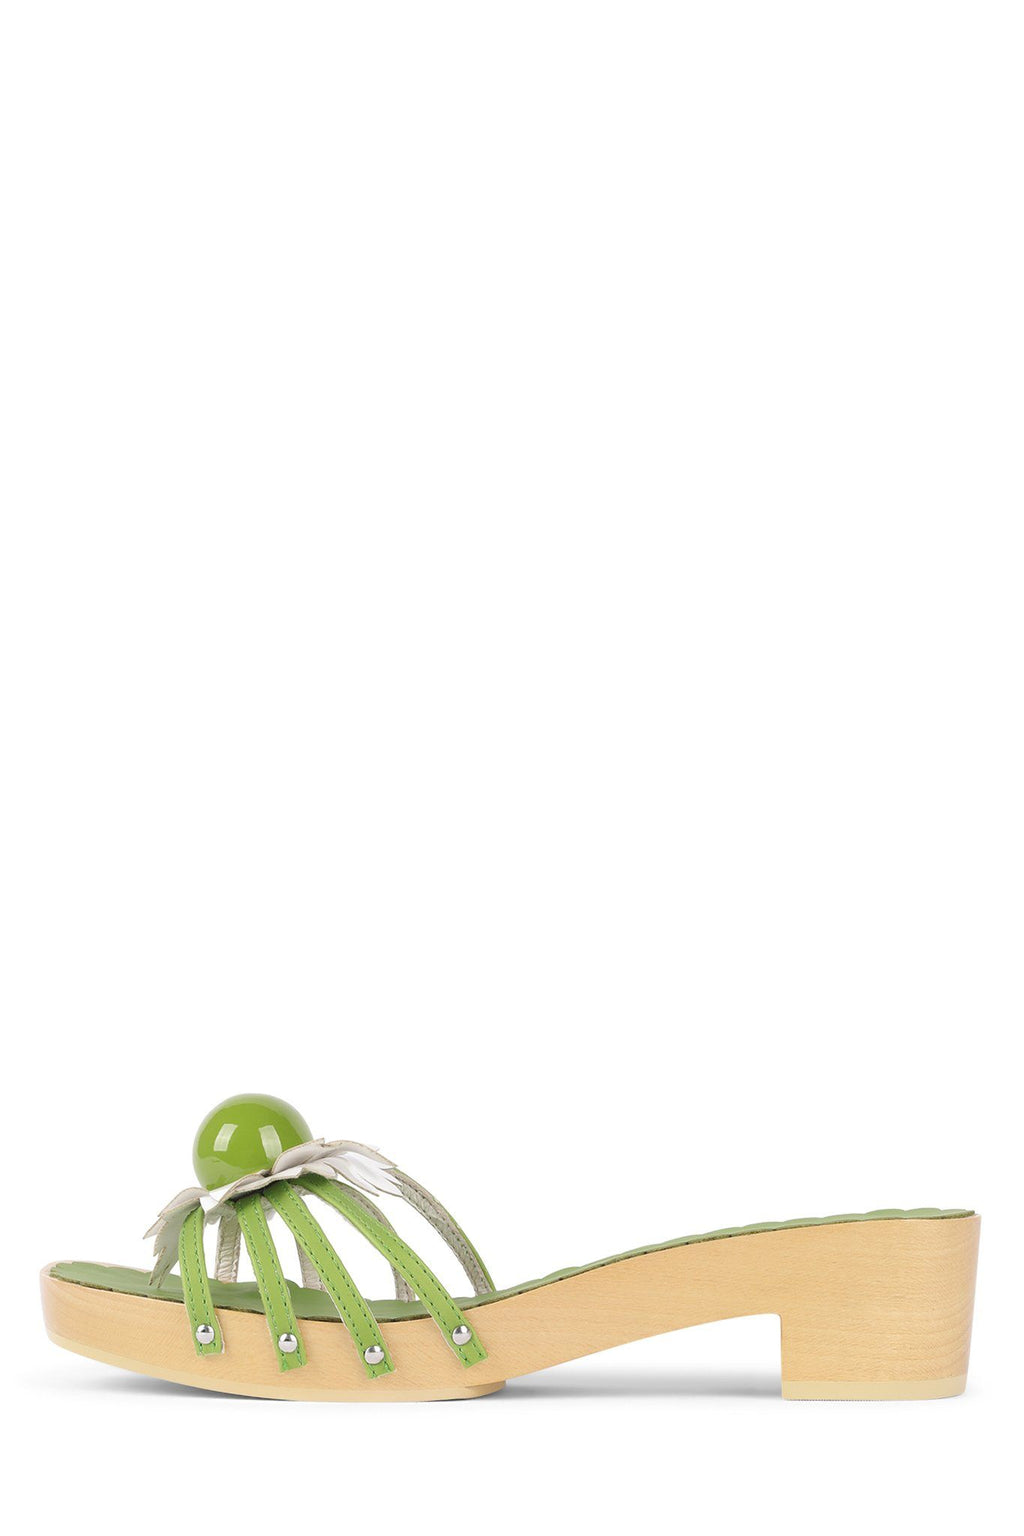 BLOSSOMS Heeled Sandal Jeffrey Campbell Green Combo 6